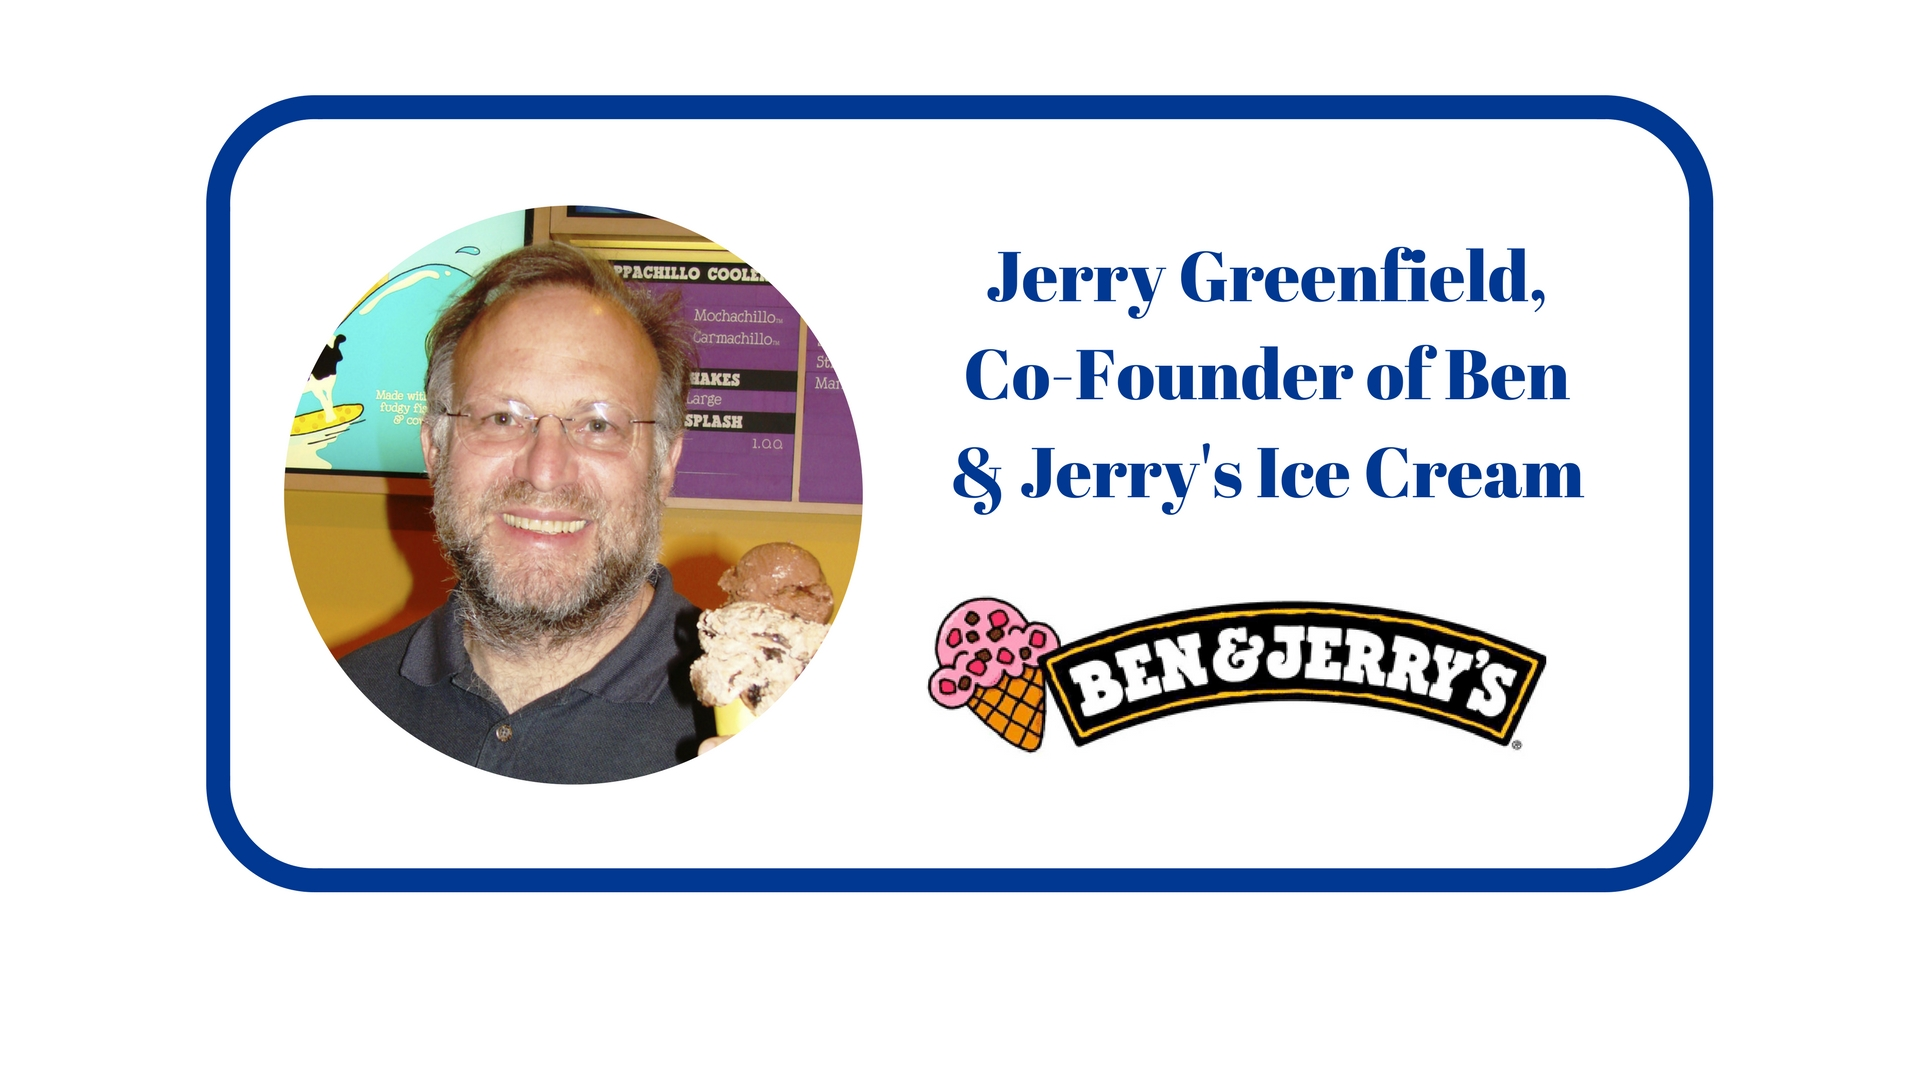 Jerry Greenfield Co-Founder of Ben  Jerry's Icecre